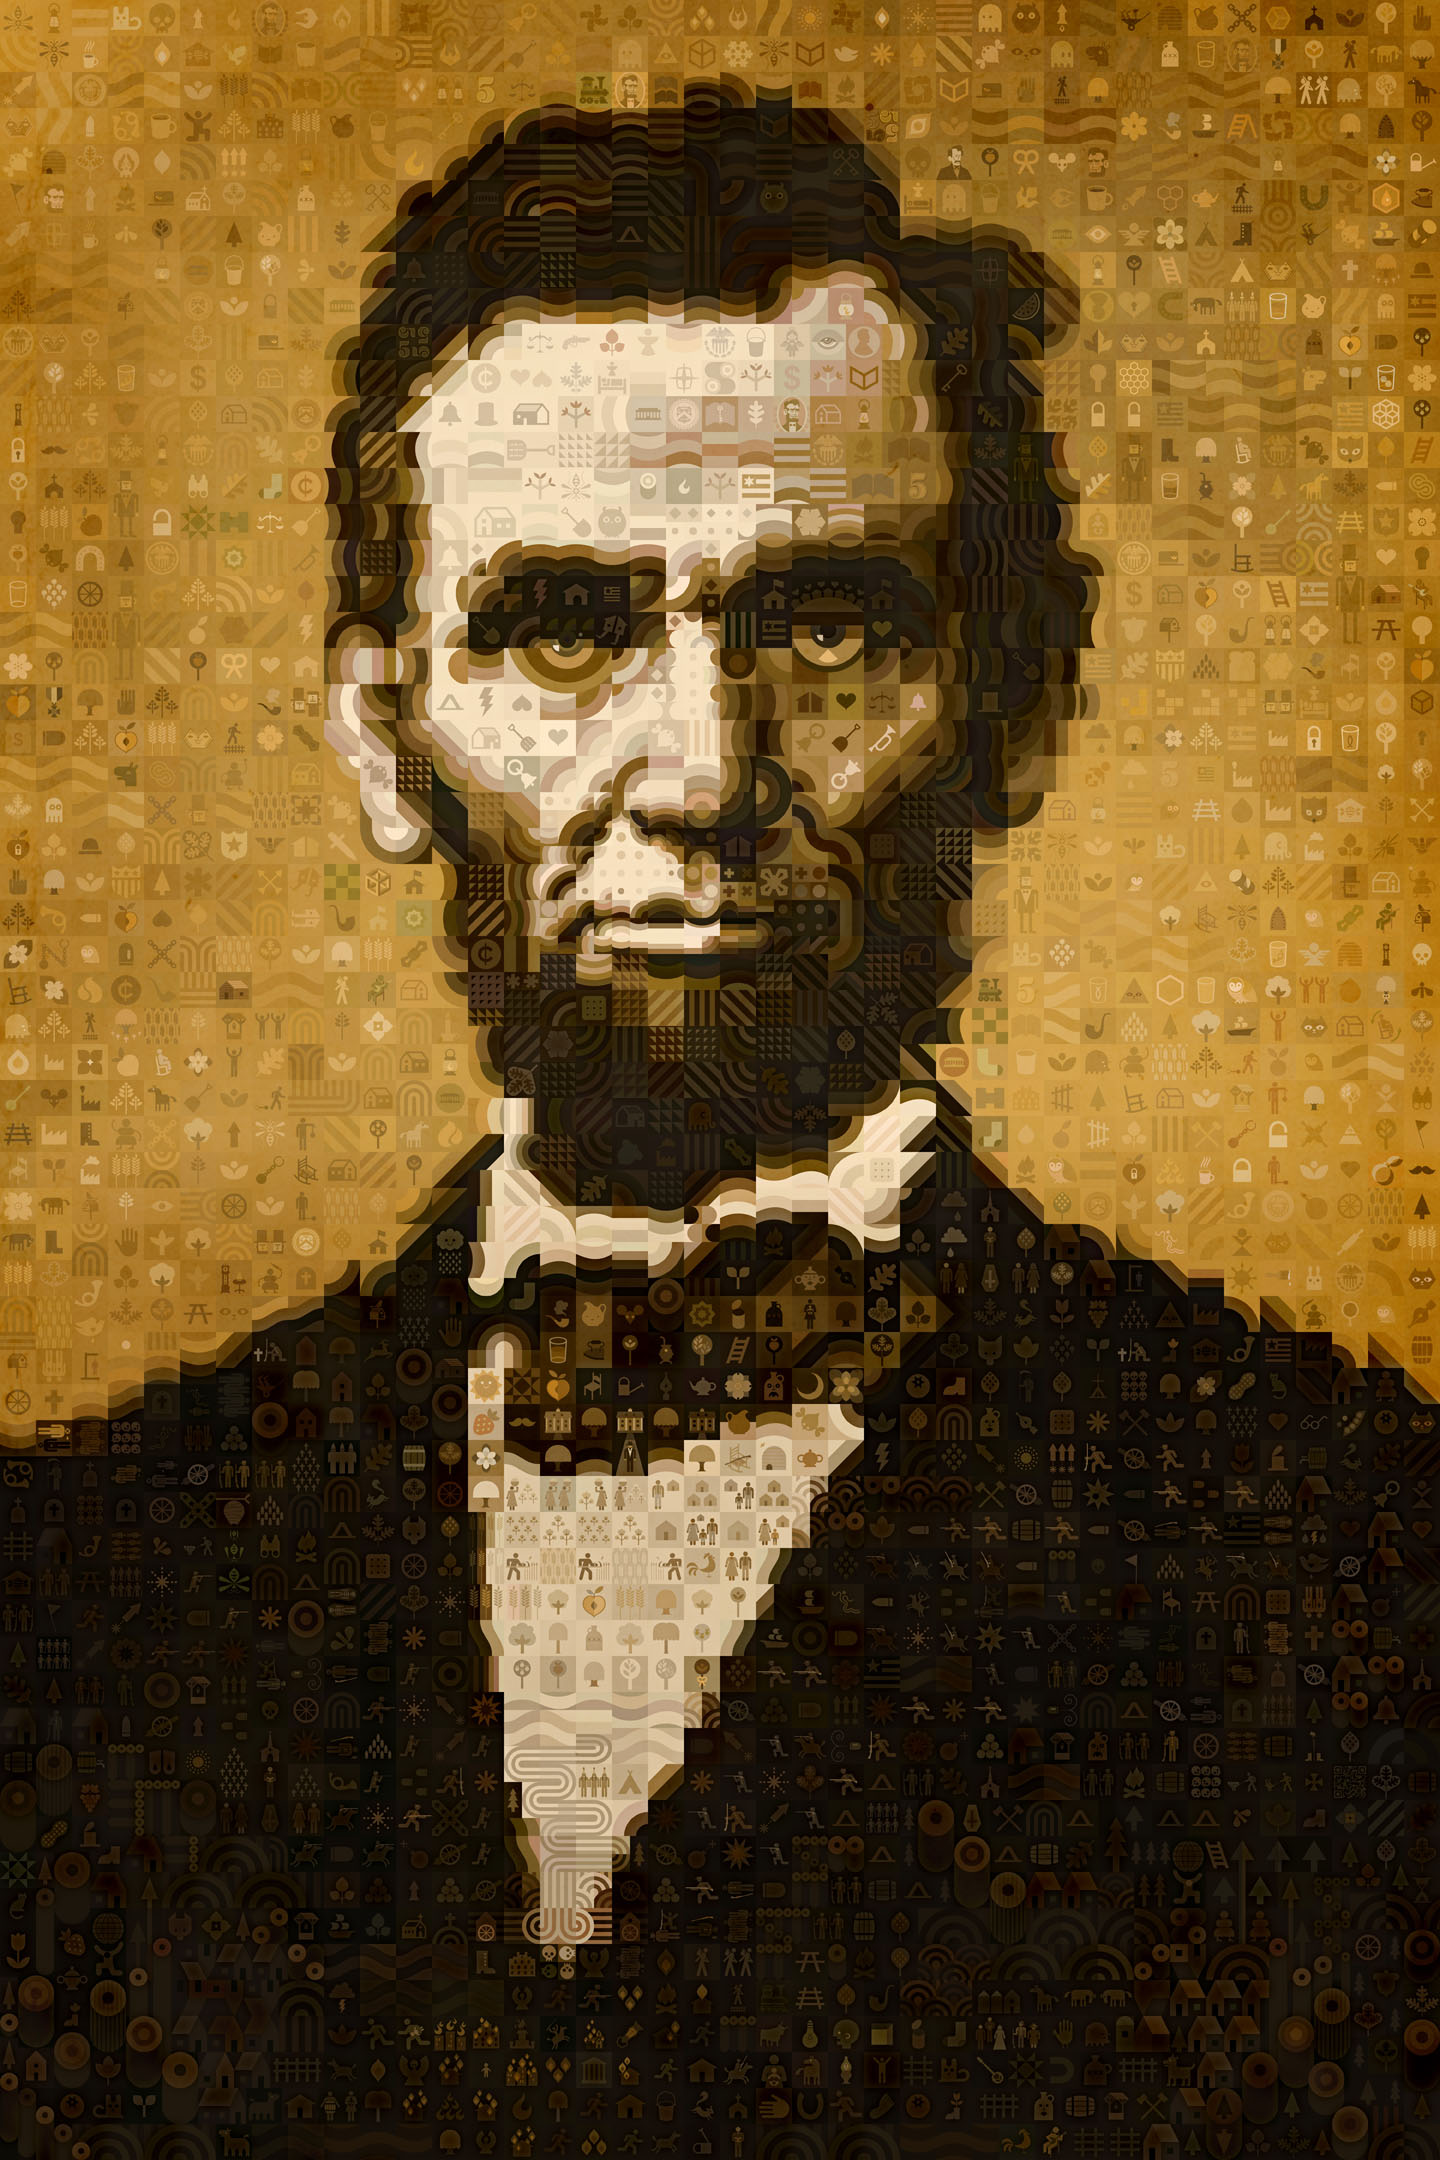 scott partridge - Abraham Lincoln digital mosaic